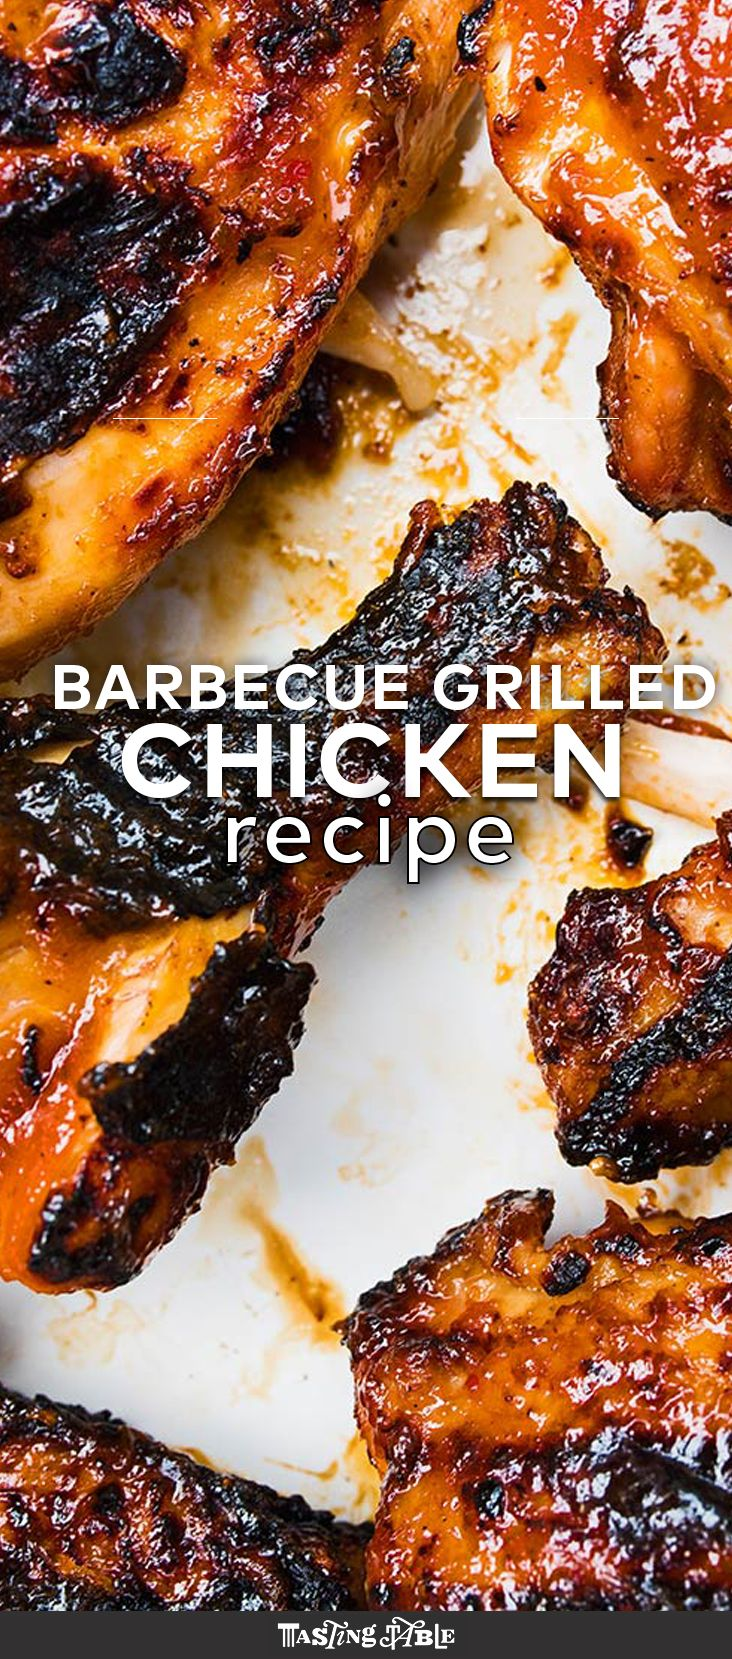 Marinating and glazing the bird in homemade BBQ sauce is the key to this grilled chicken.